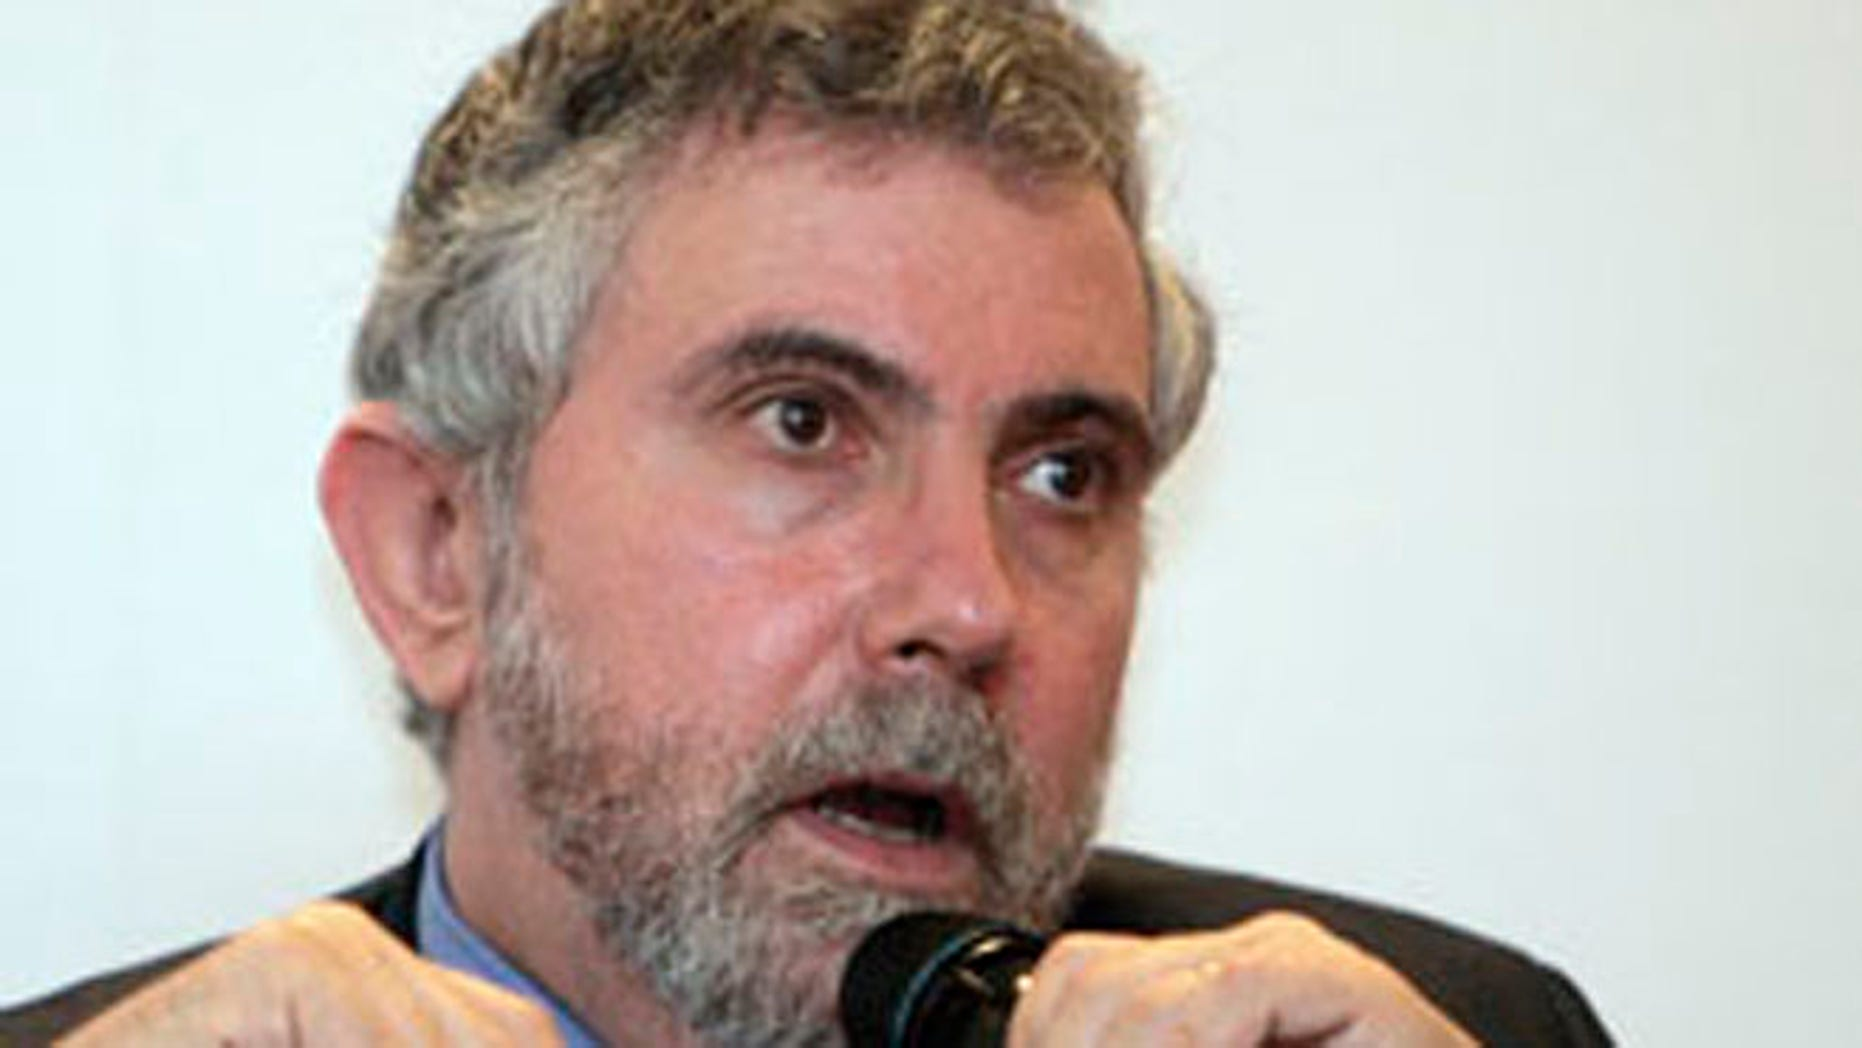 Aug. 10, 2009: Paul Krugman speaks during a press conference in Kuala Lumpur, Malaysia.